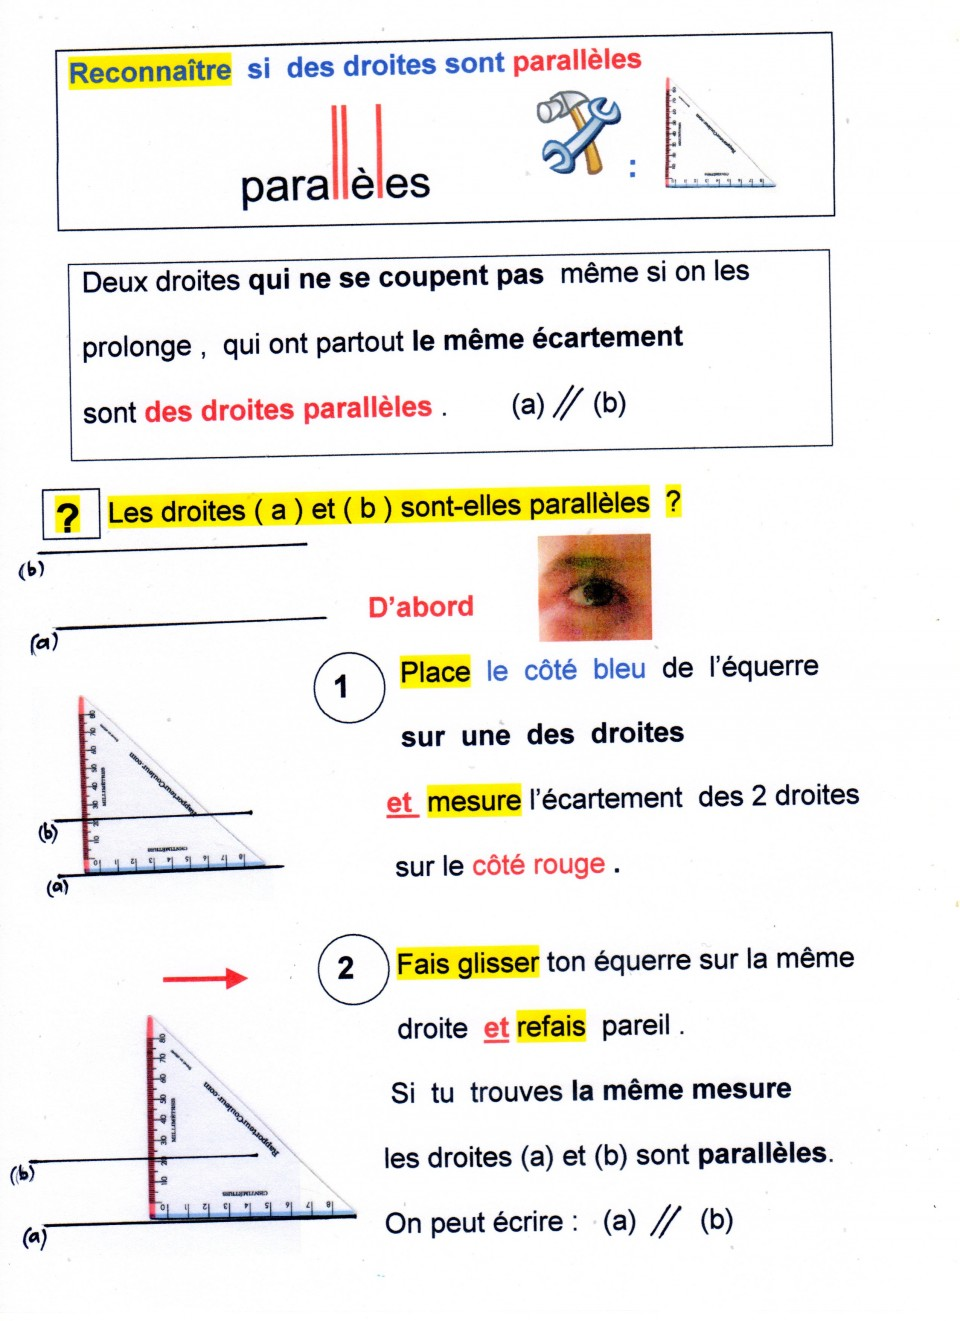 017 Essayer Essay Example Impressive De Or A Conjugation Imperative Ne Pas Rire 960